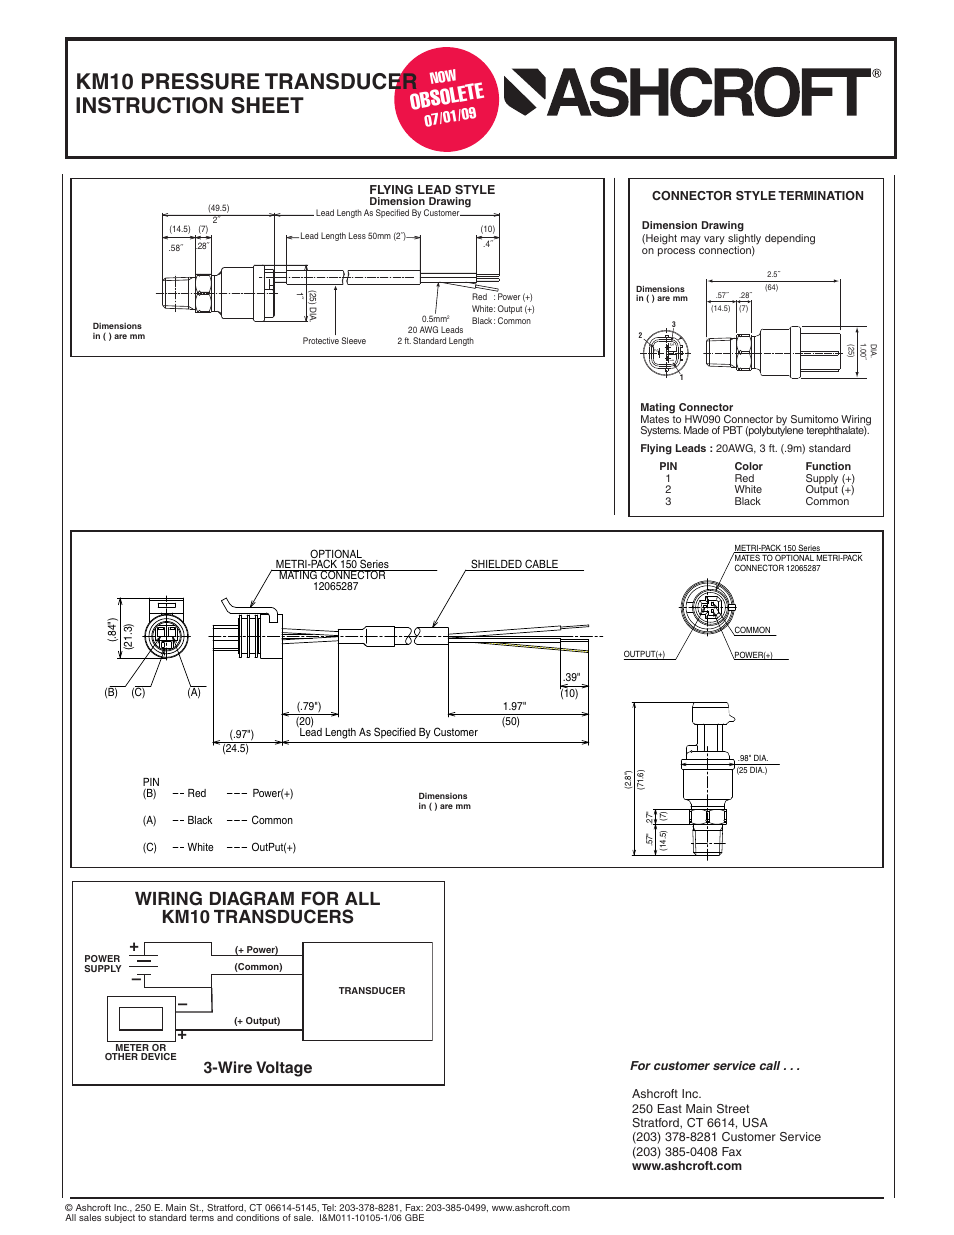 Garmin Transducer Wiring Diagram Diagrams 232 Best Image 2018 4 Pin Gemeco